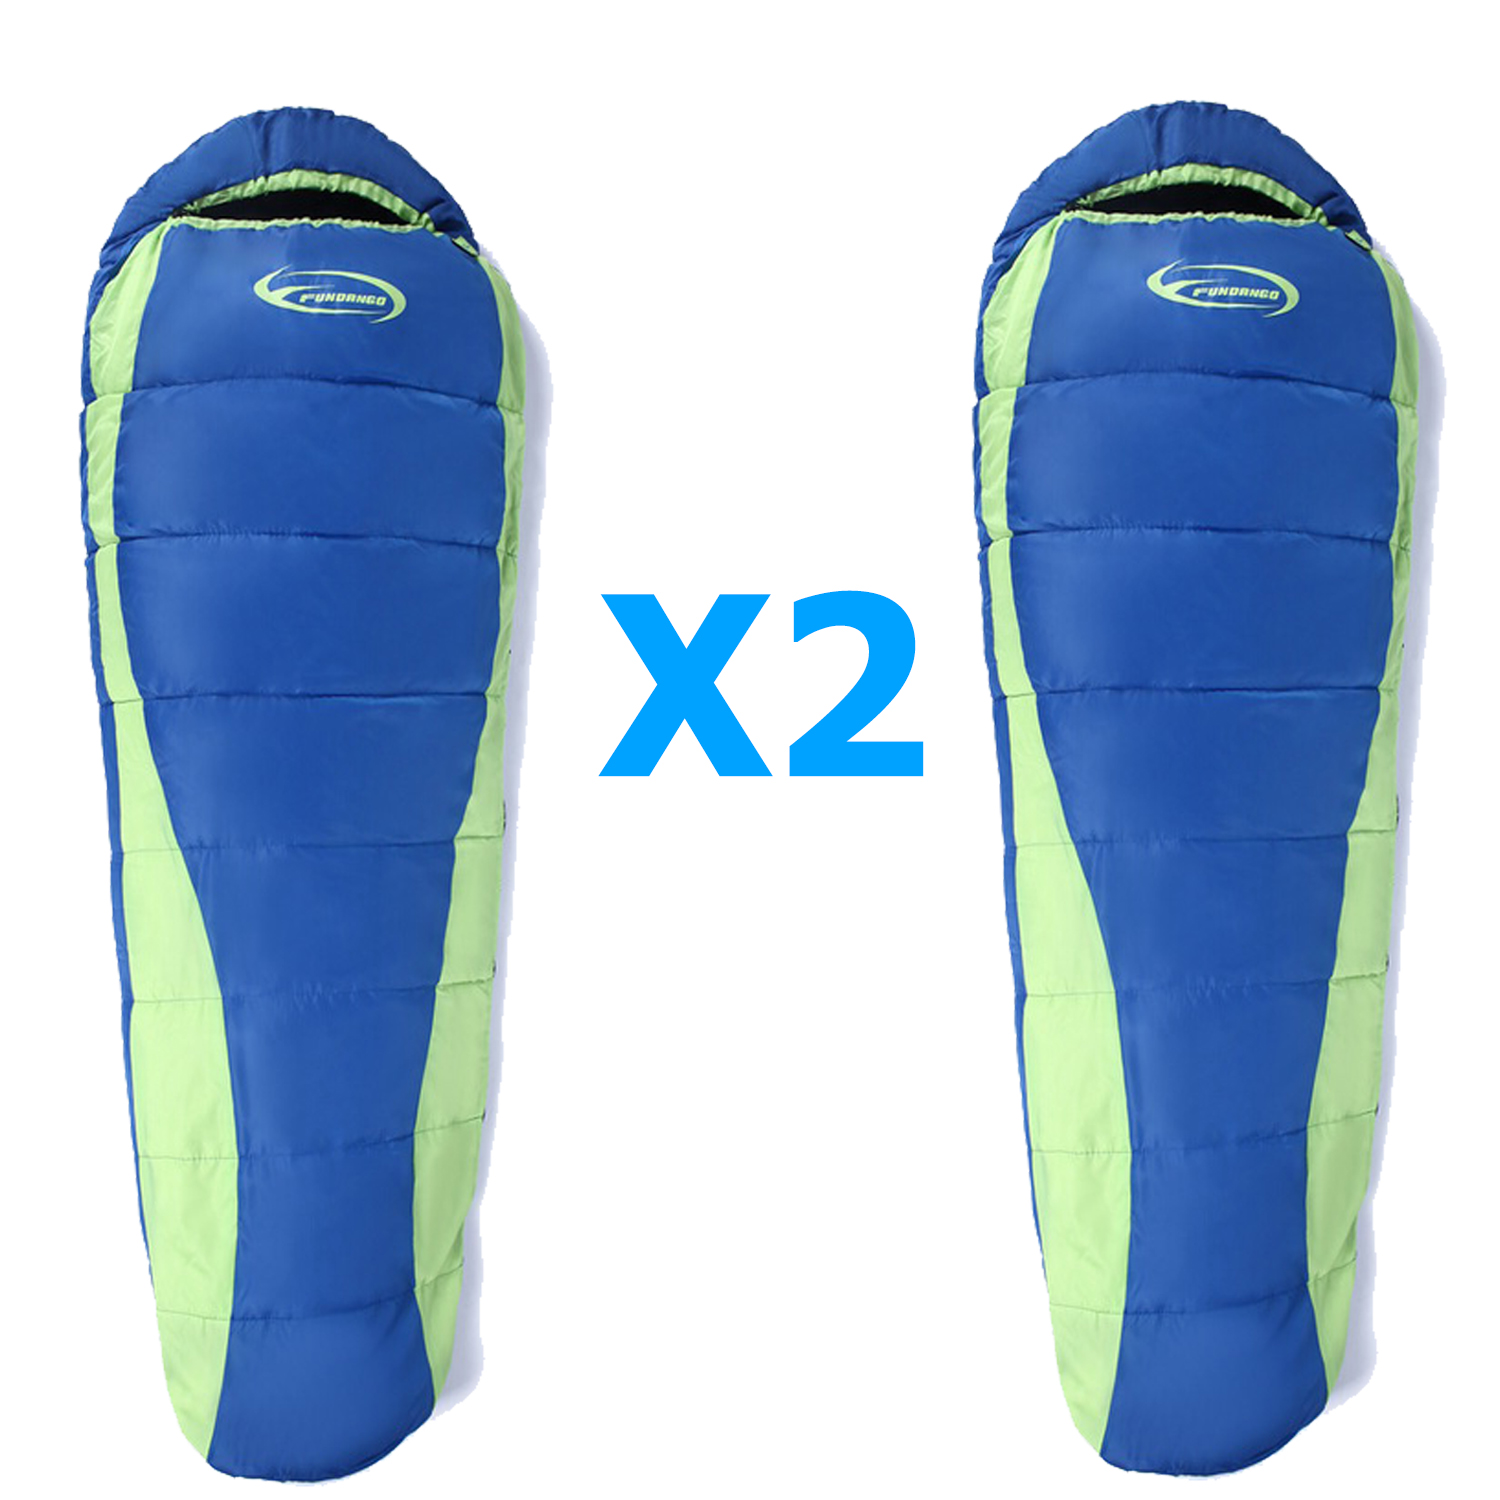 2 Person Tent 2x Mummy Sleeping Bags 3day Zombie Survival